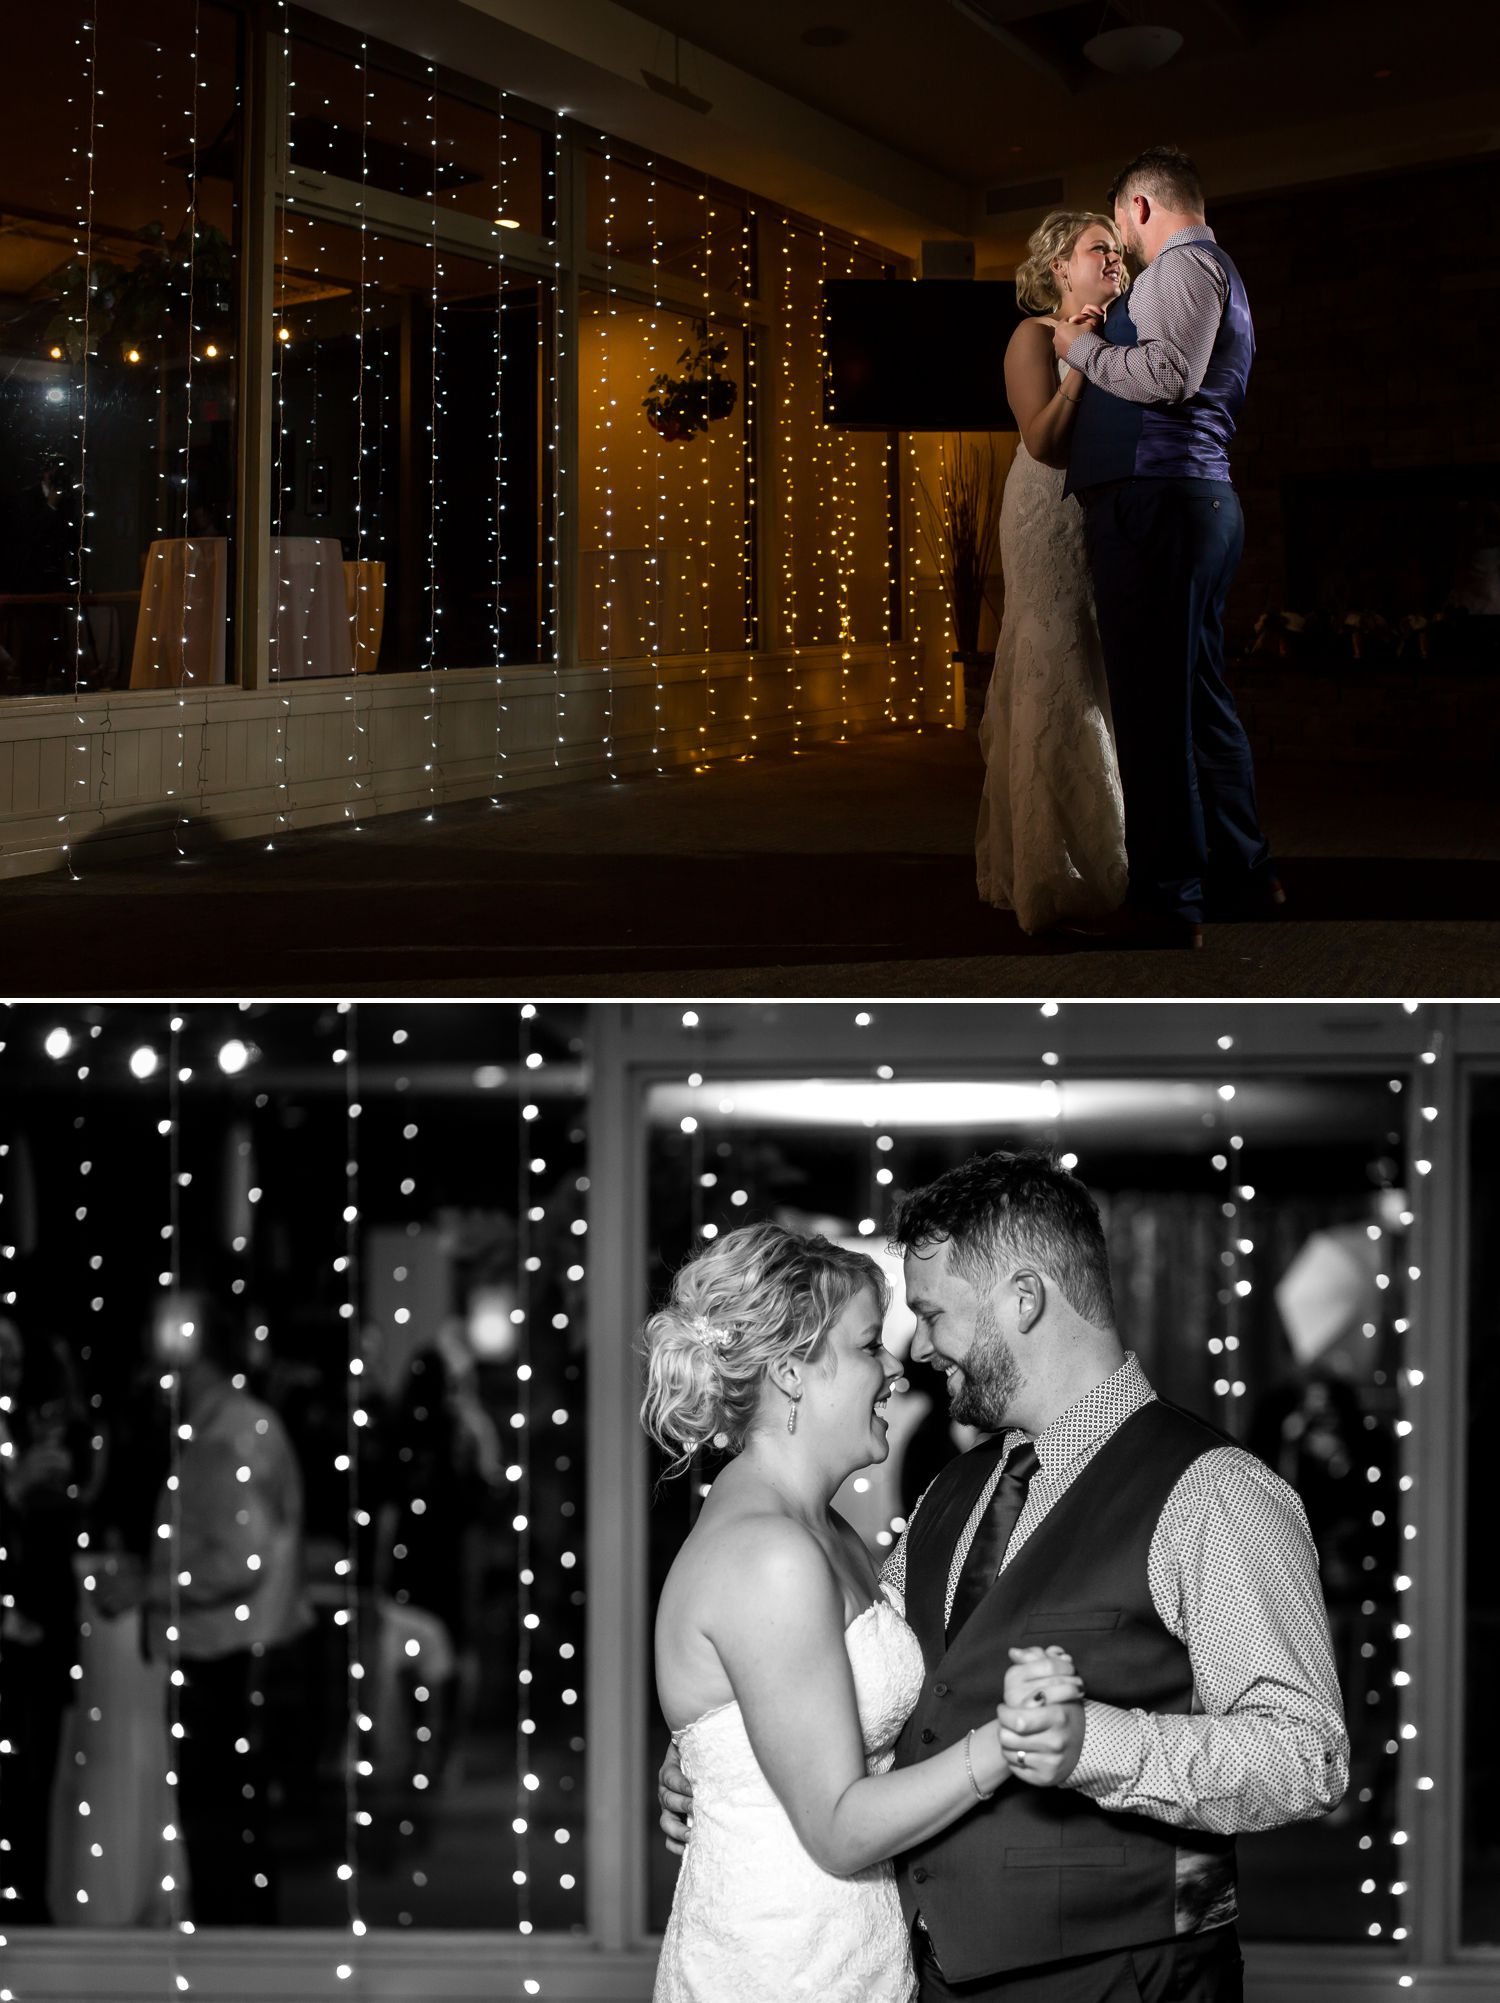 The bride and groom during their first dance at their Rideau View Golf Club Wedding